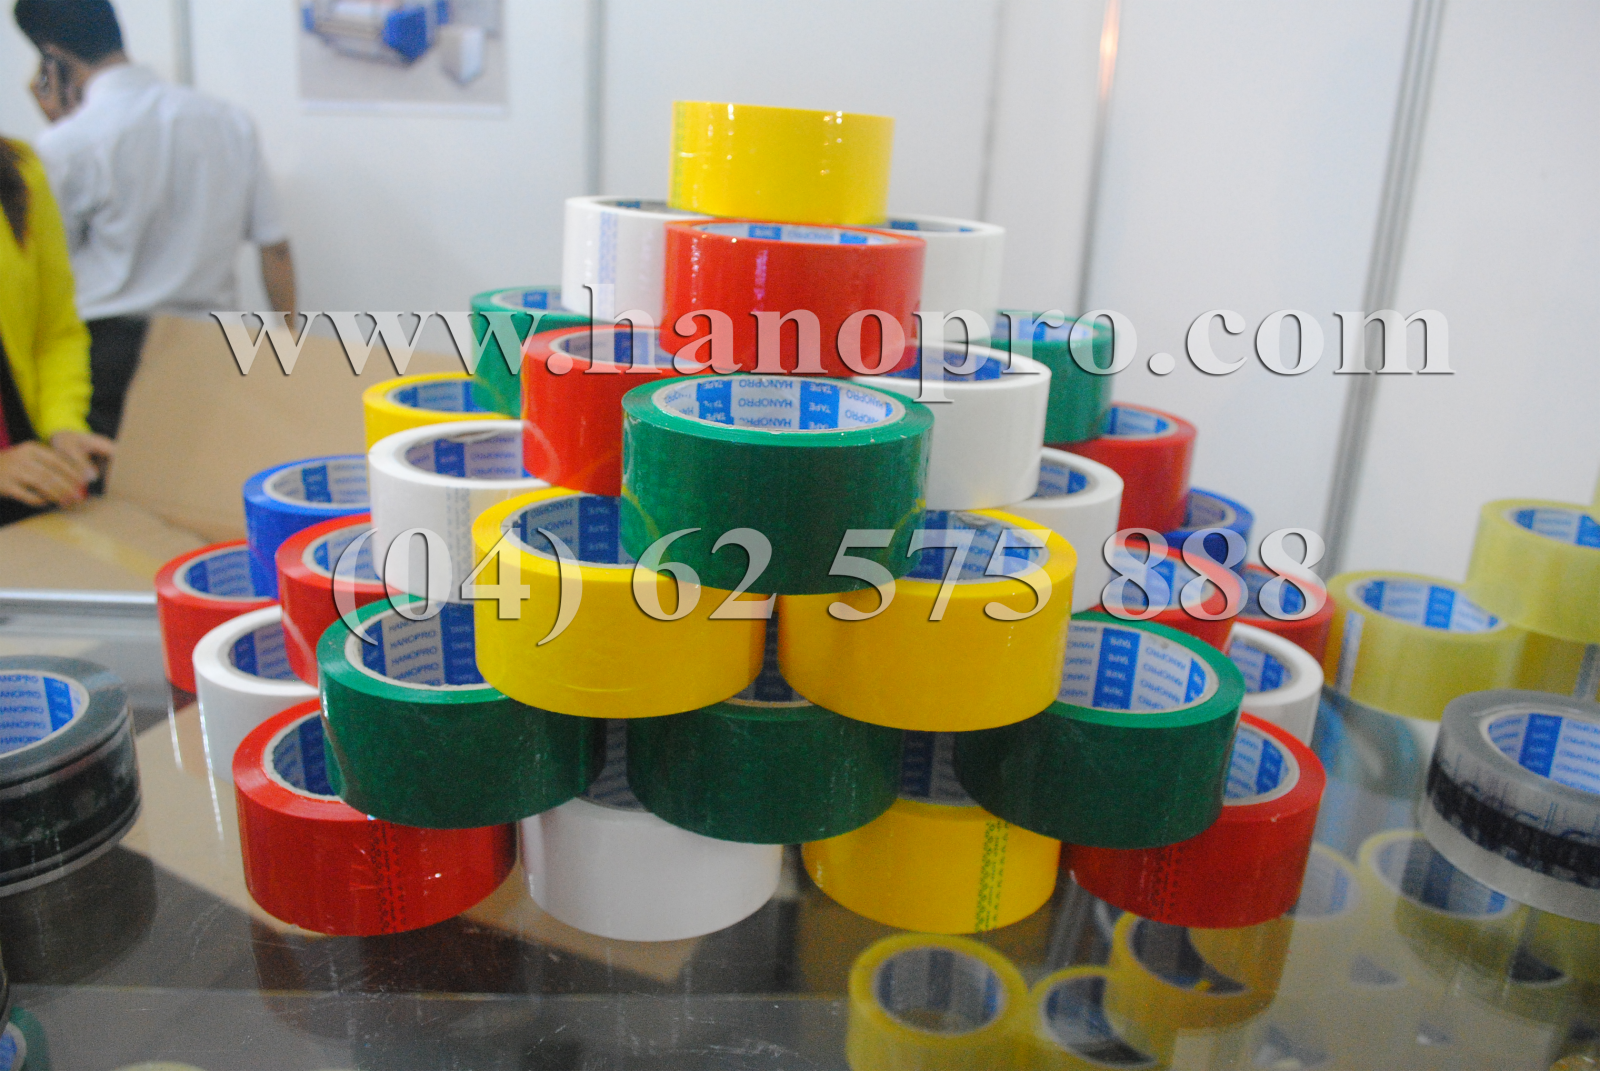 Opp packing tape in Red, yellow and blue color